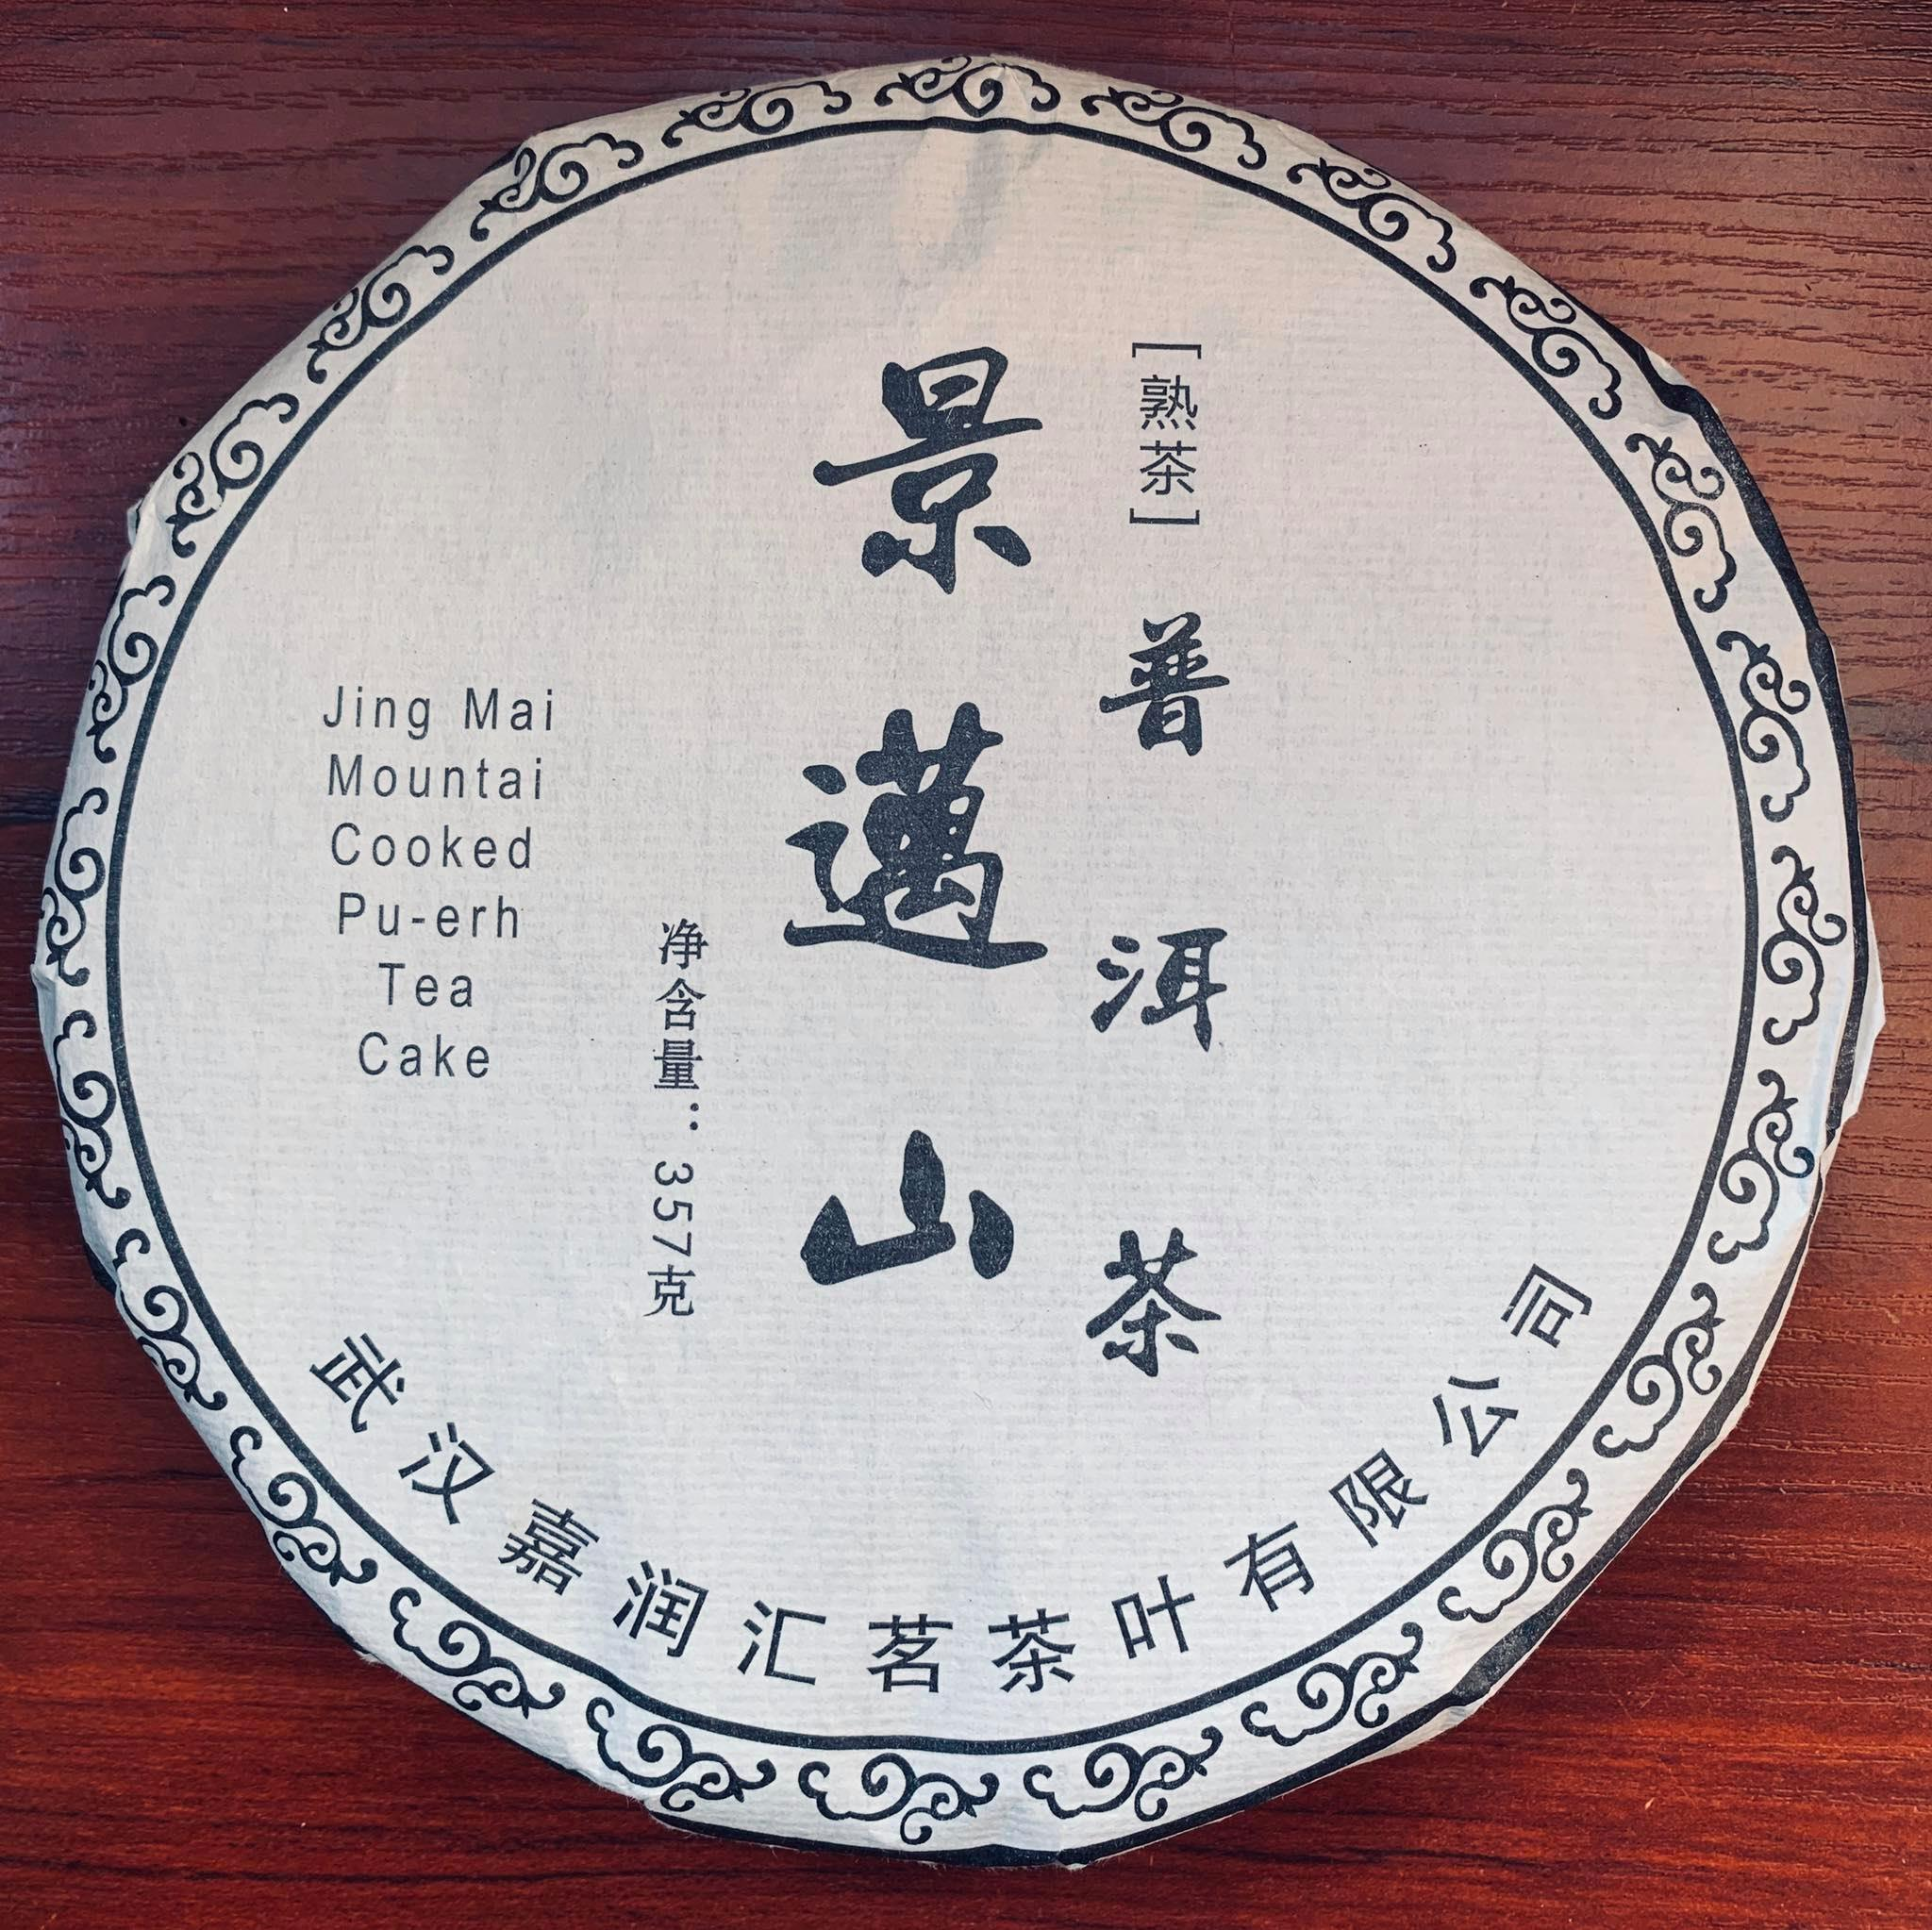 Pu Erh JING MAI MOUNTAI Cooked Cake 375 g - 10 Years Old